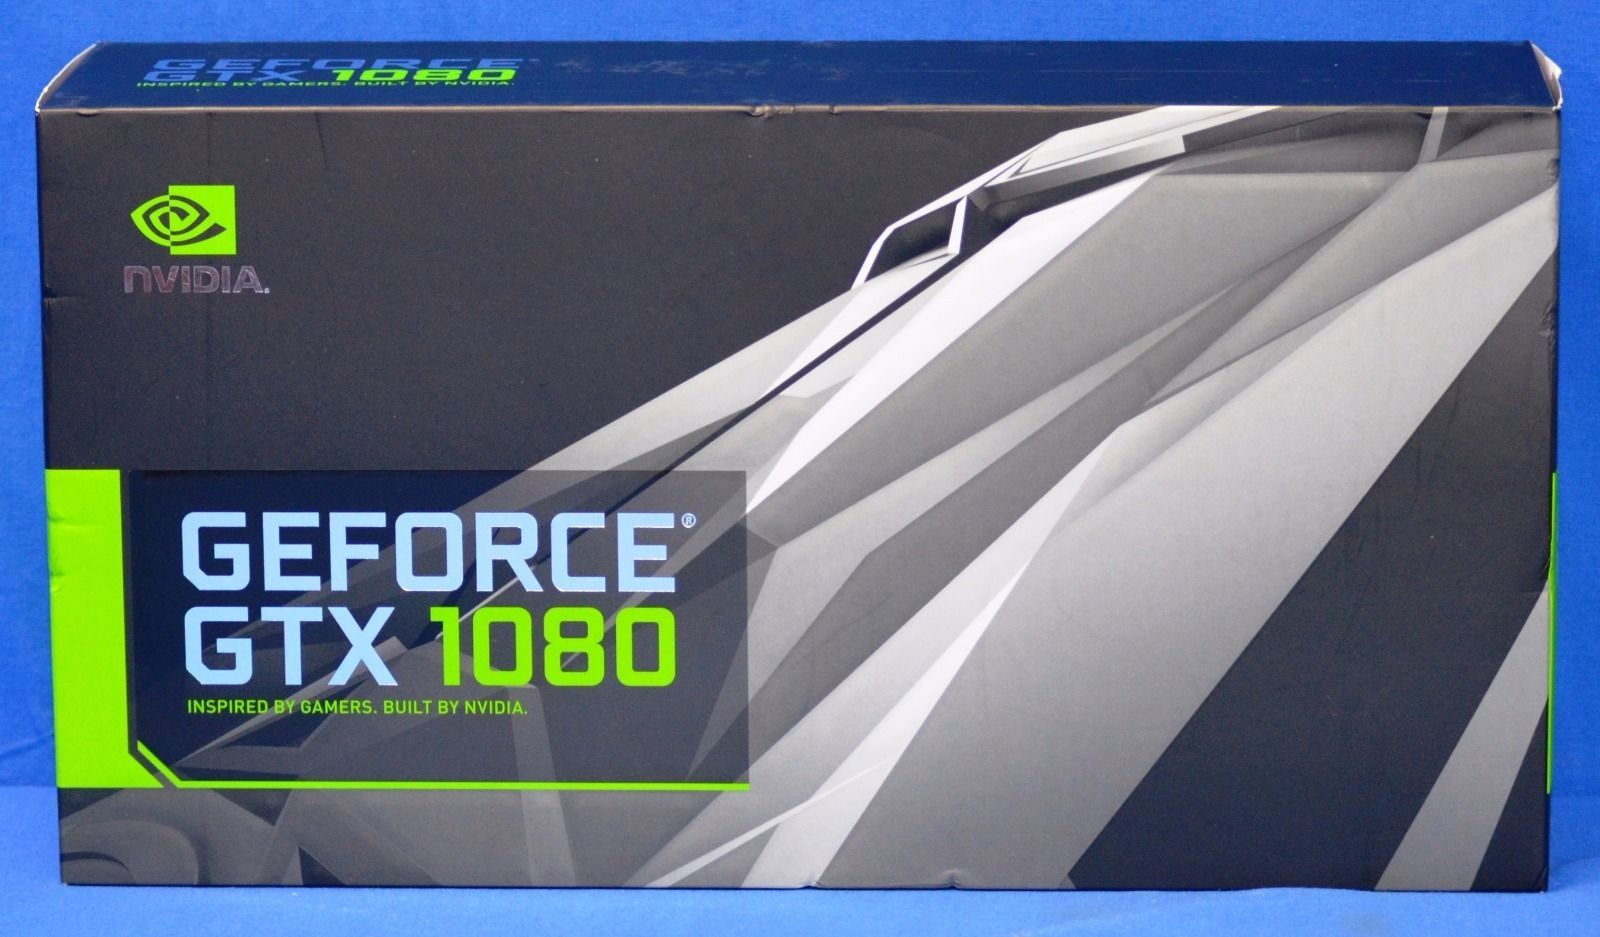 #Trending02 - NVIDIA GeForce GTX 1080 Founders Edition 3.0 Graphics Card 8GB VRAM PCI Express https://t.co/ZJjEbATMoN